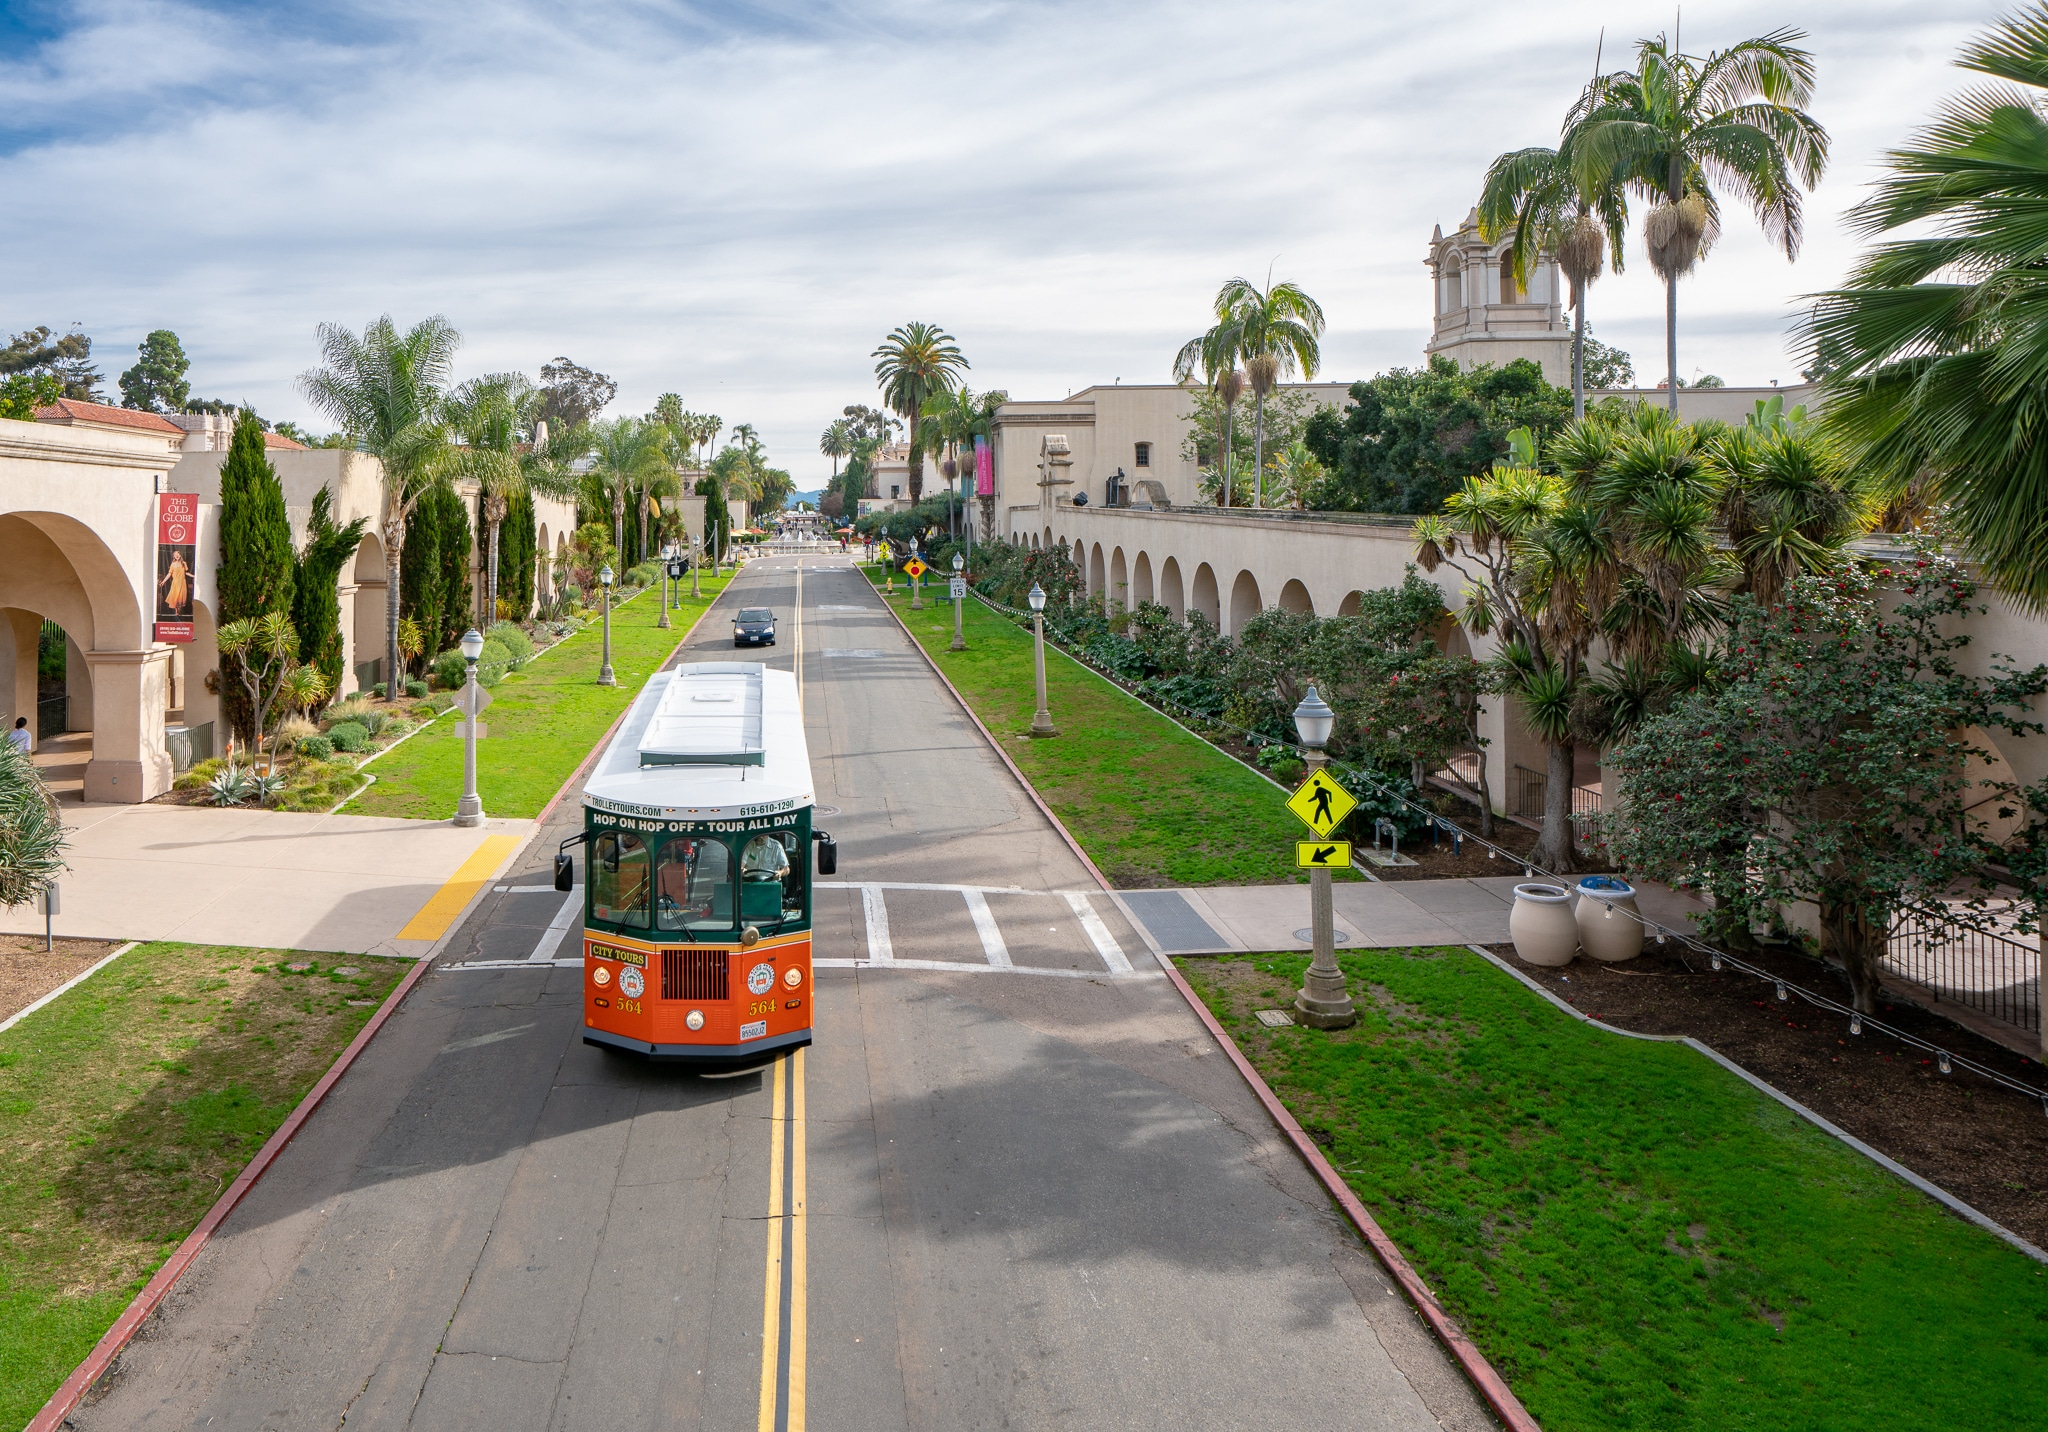 Find the best San Diego tours to take for sightseeing